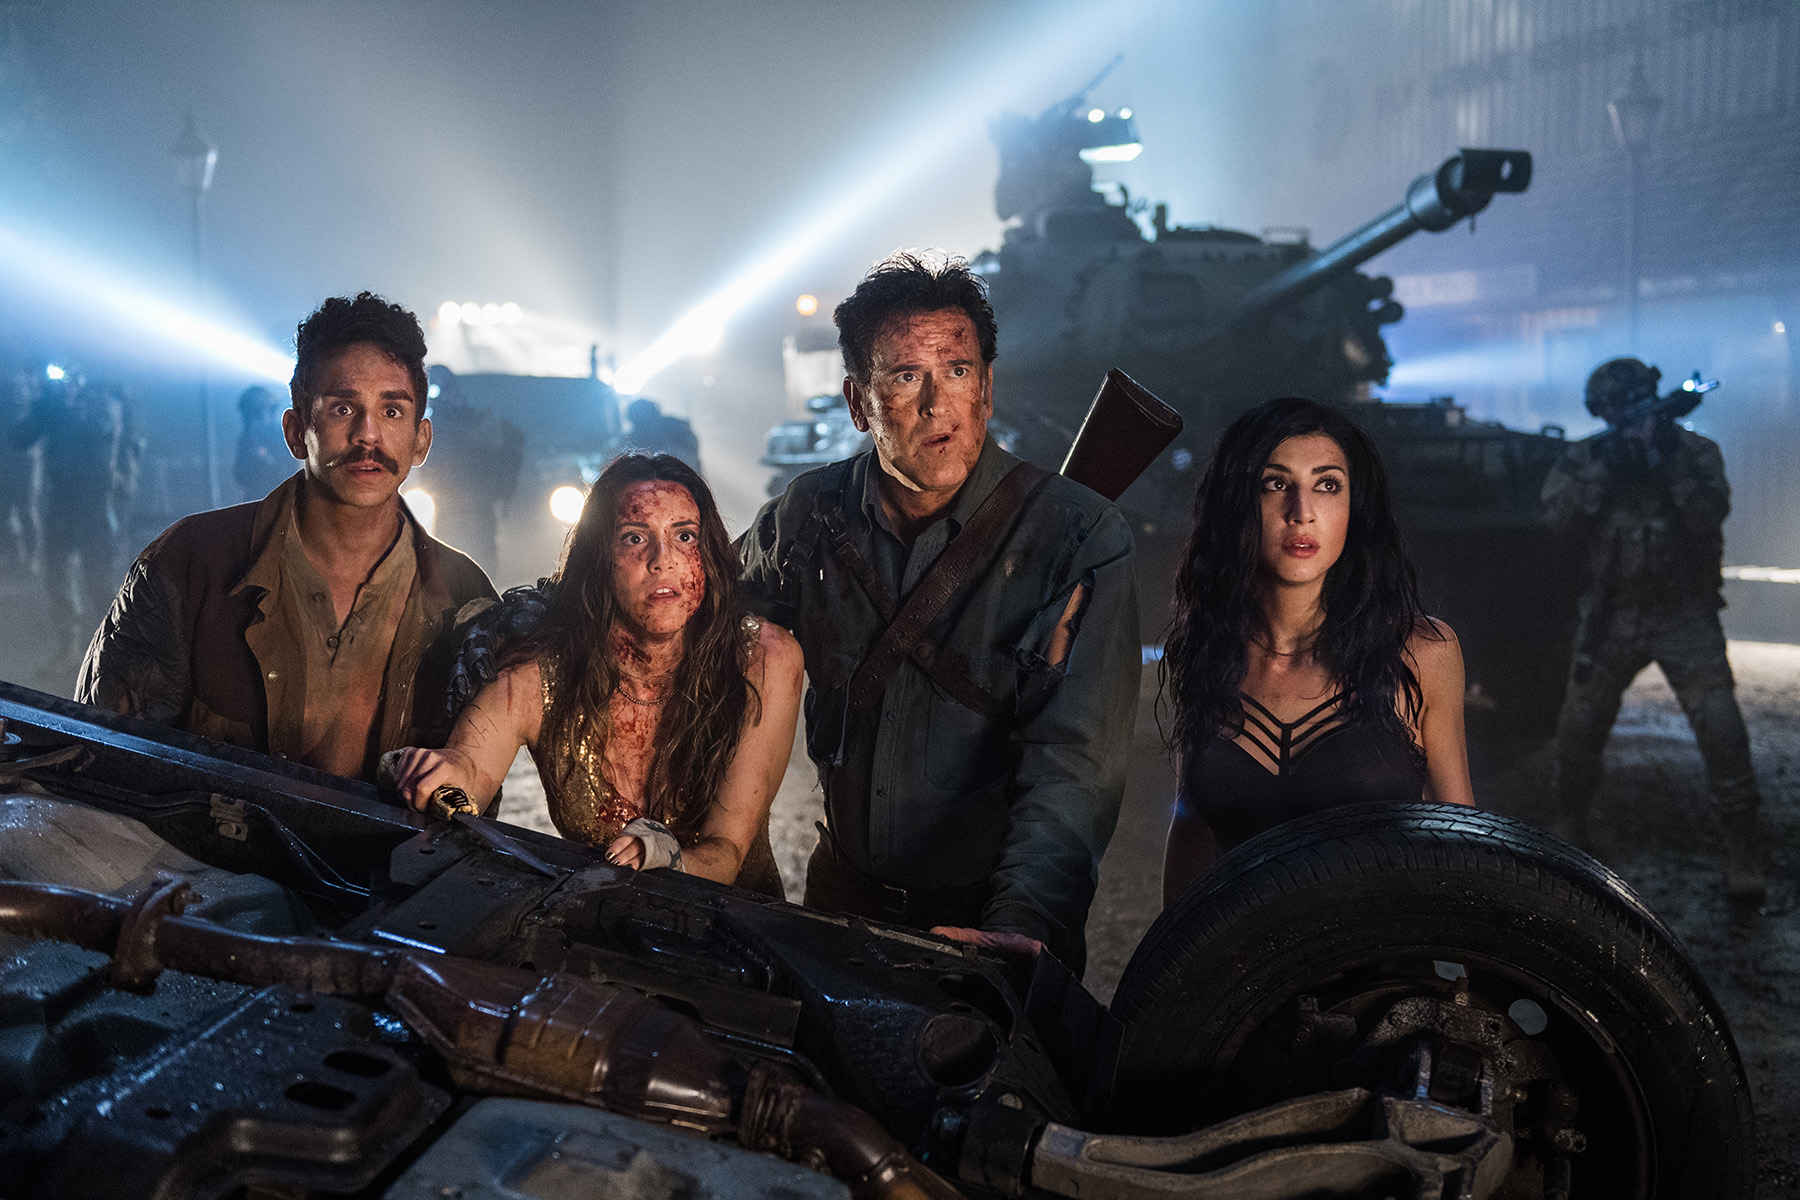 Ash vs Evil Dead Conjures Up Deadites, Daughters, and Semen for Its Wild Third Season